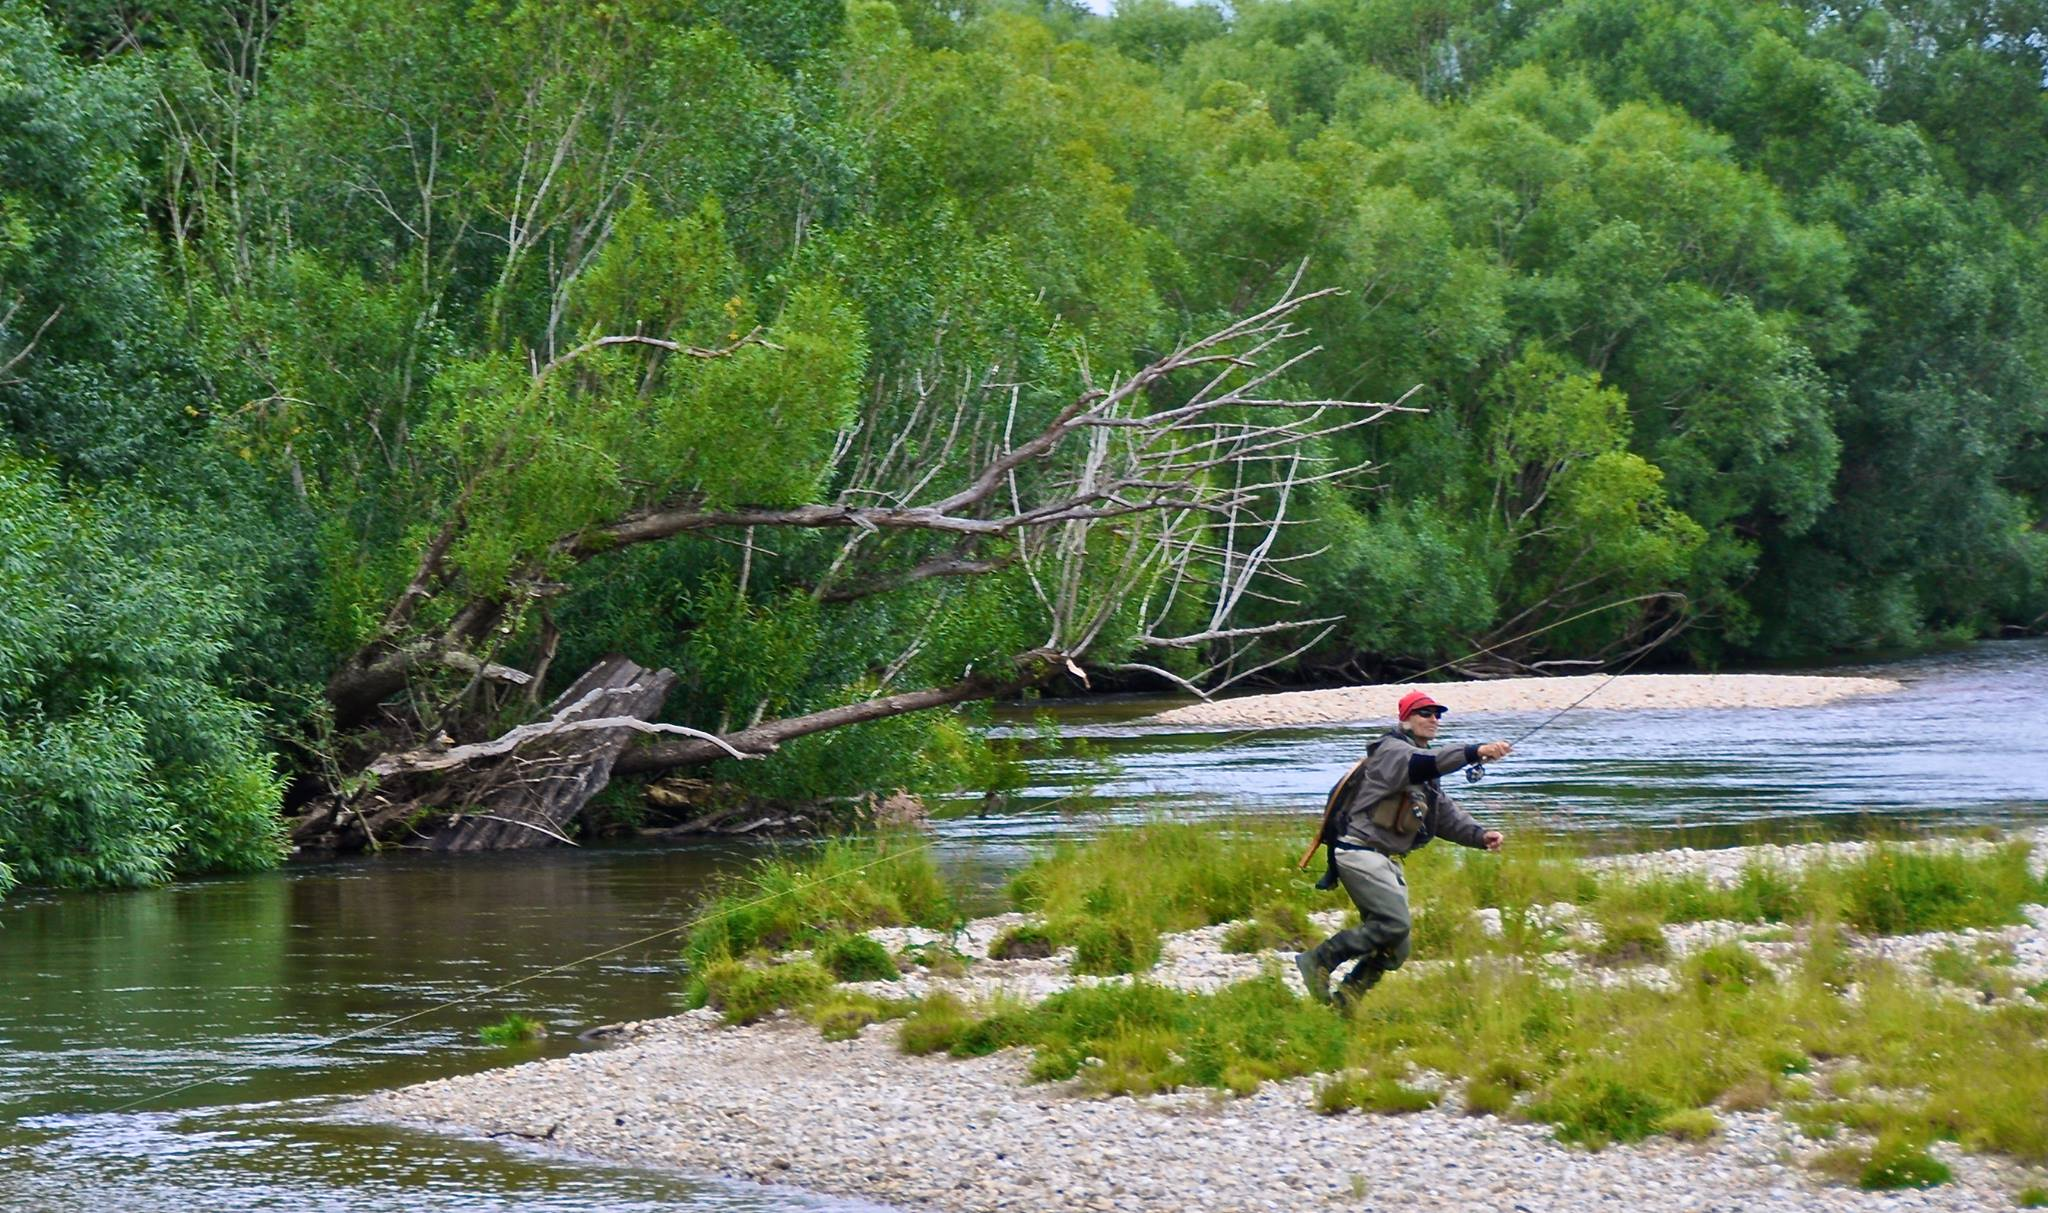 Guided fly fishing in new zealand with derek grzelewski for New zealand fly fishing